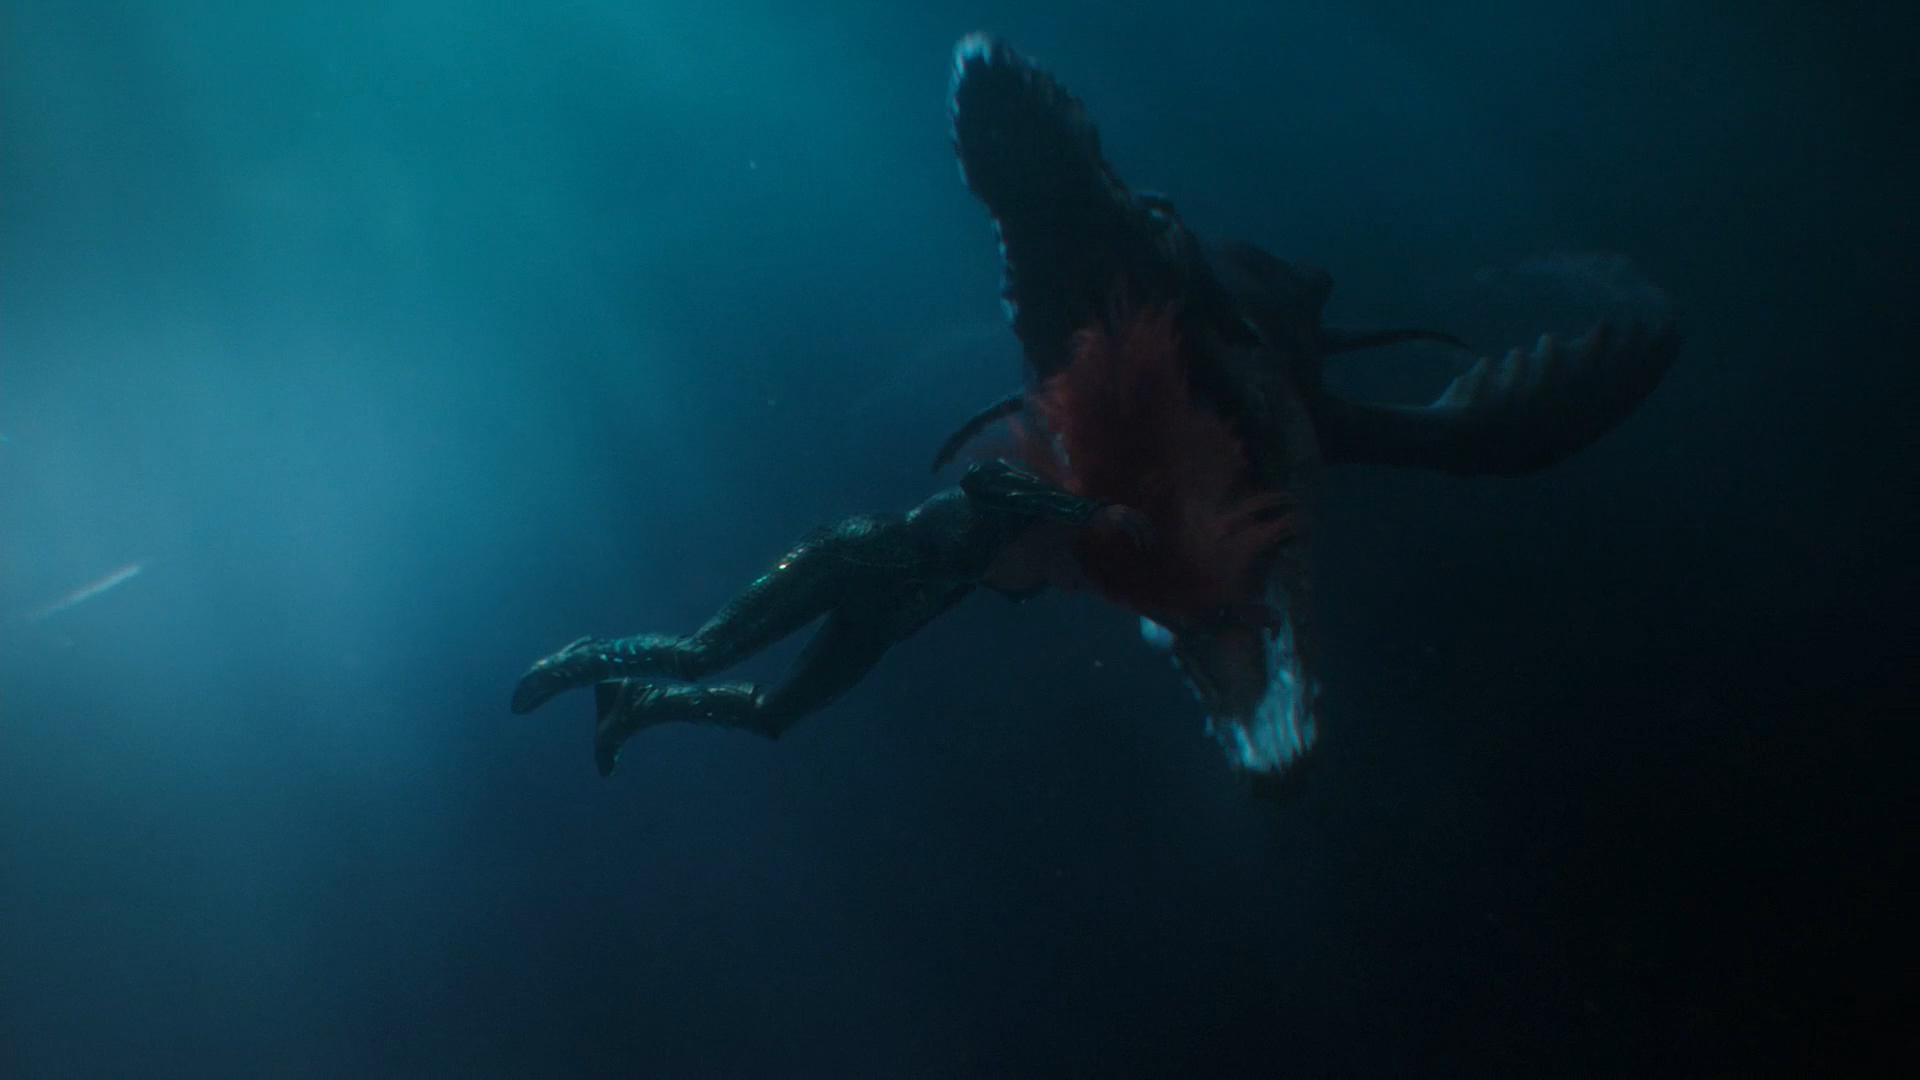 On Aquaman I've created the concept sculpt and final model for the Pliosaur, seen here almost devouring Mera. I've also helped to make the Fisherman Folk models technically sound and create their facial shapes